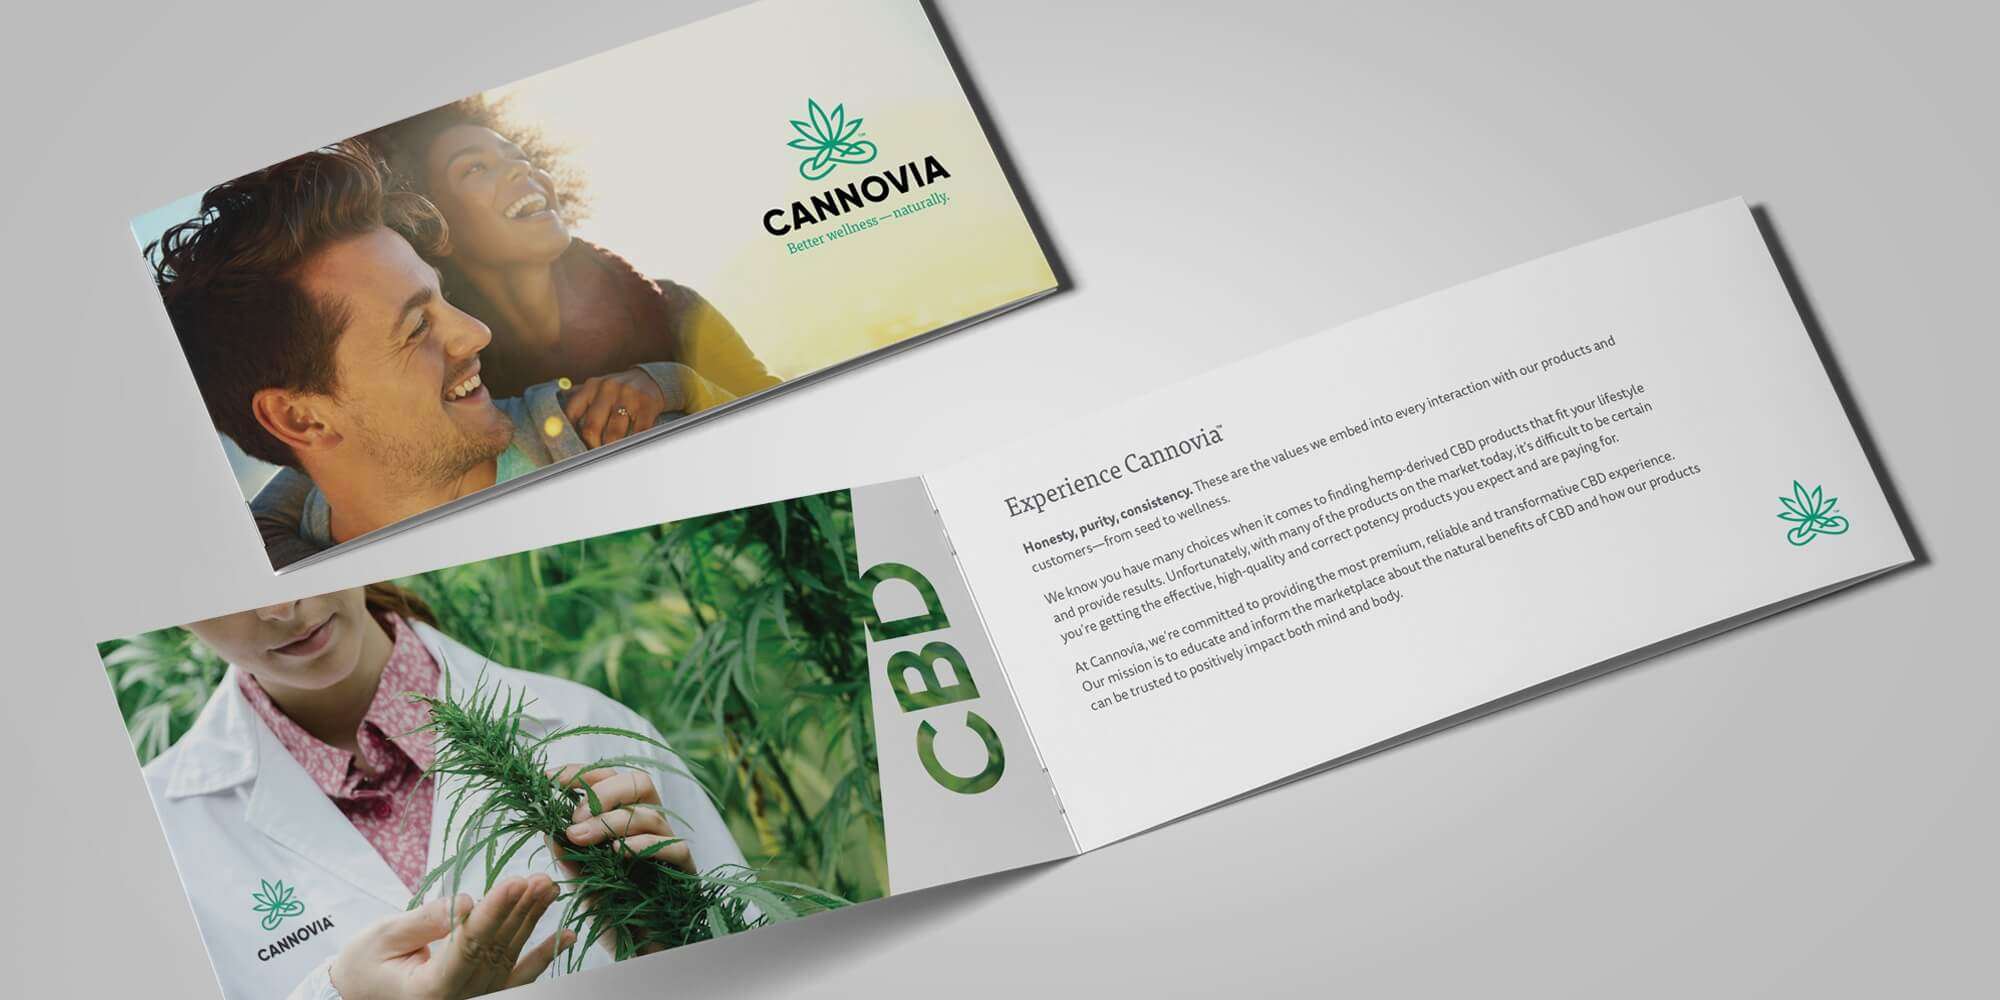 Cannovia brochure cover and inside